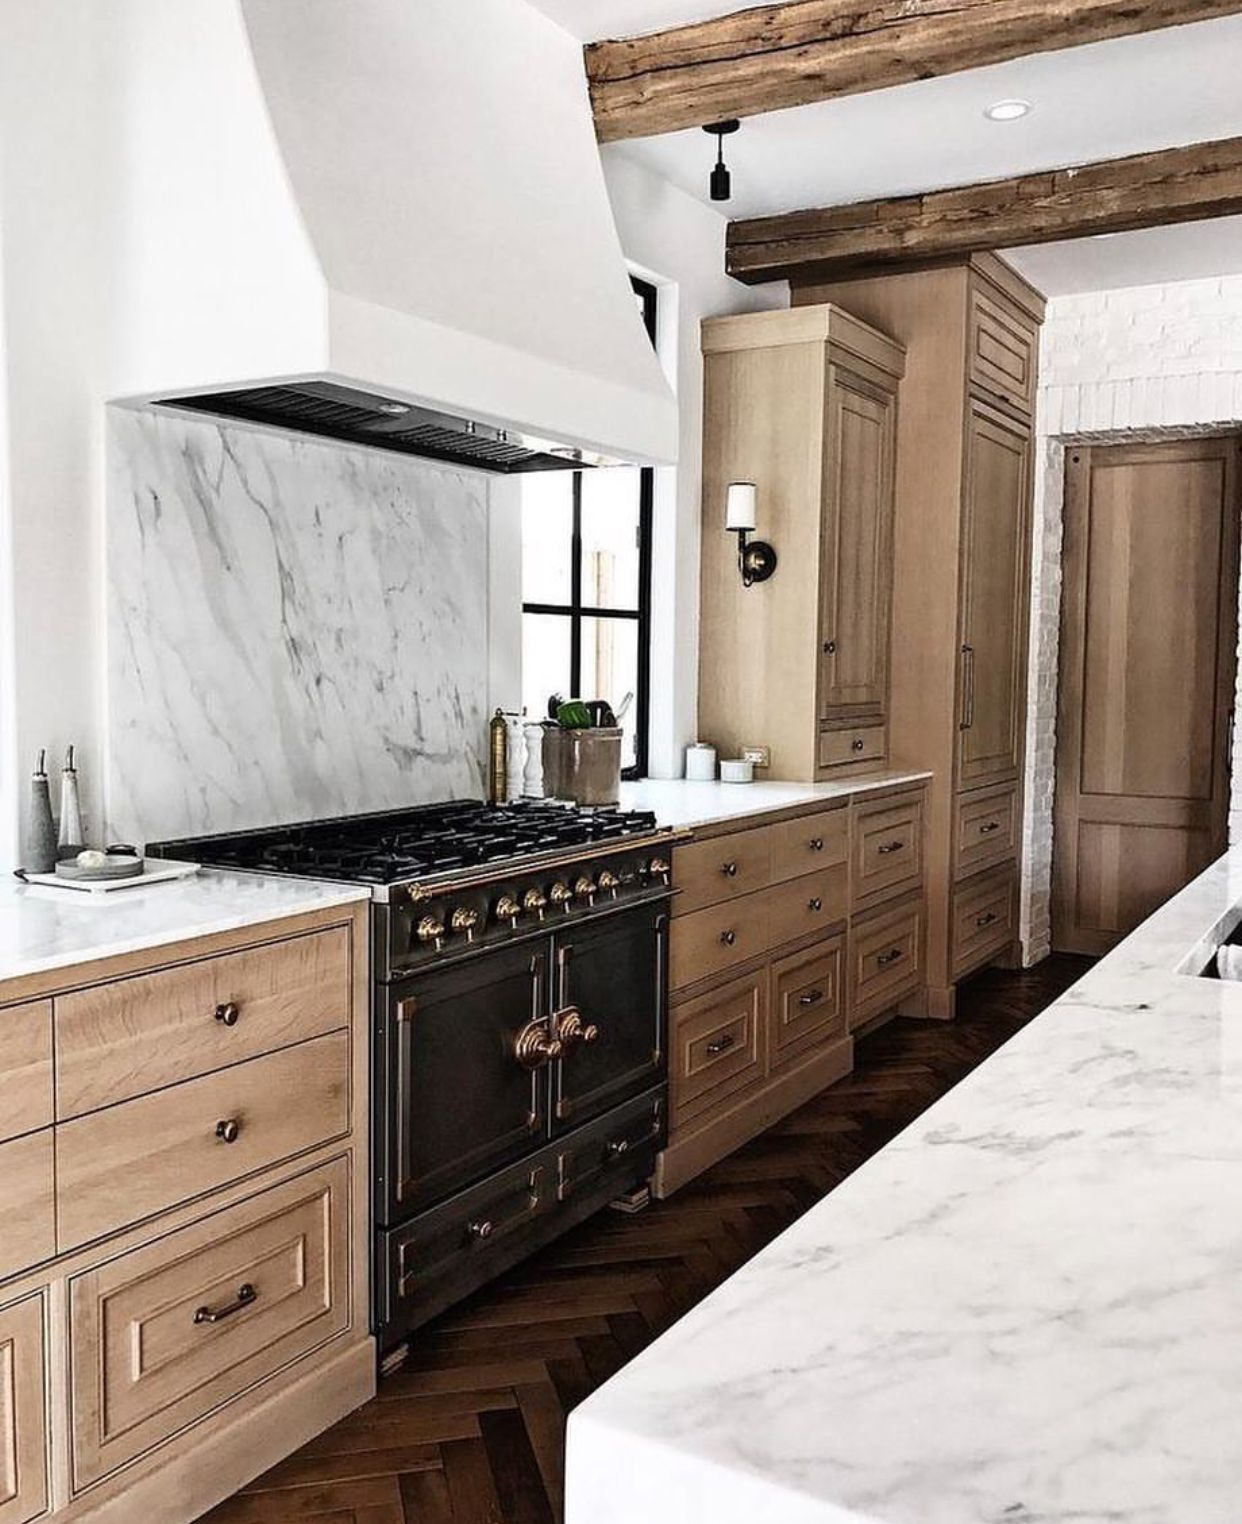 Everybody Keeps Mixing This With Marble Just Not Sure I Like That What To Use H Timeless Kitchen Modern Kitchen Cabinet Design Modern Farmhouse Kitchens